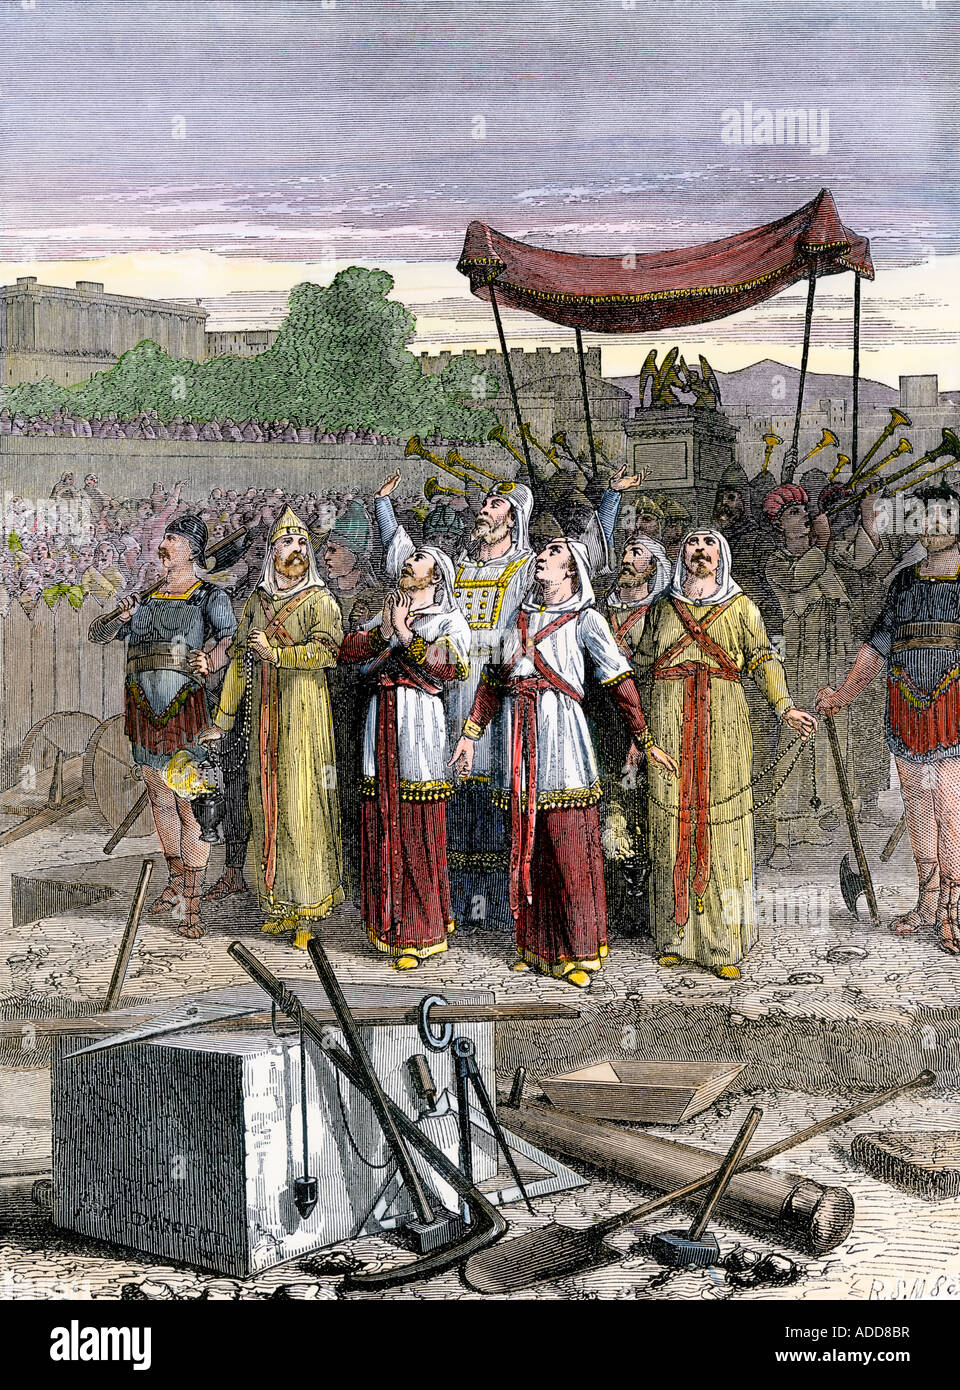 Israelites celebrate rebuilding Solomons temple at Jerusalem after the Babylonian Captivity. Hand-colored woodcut - Stock Image